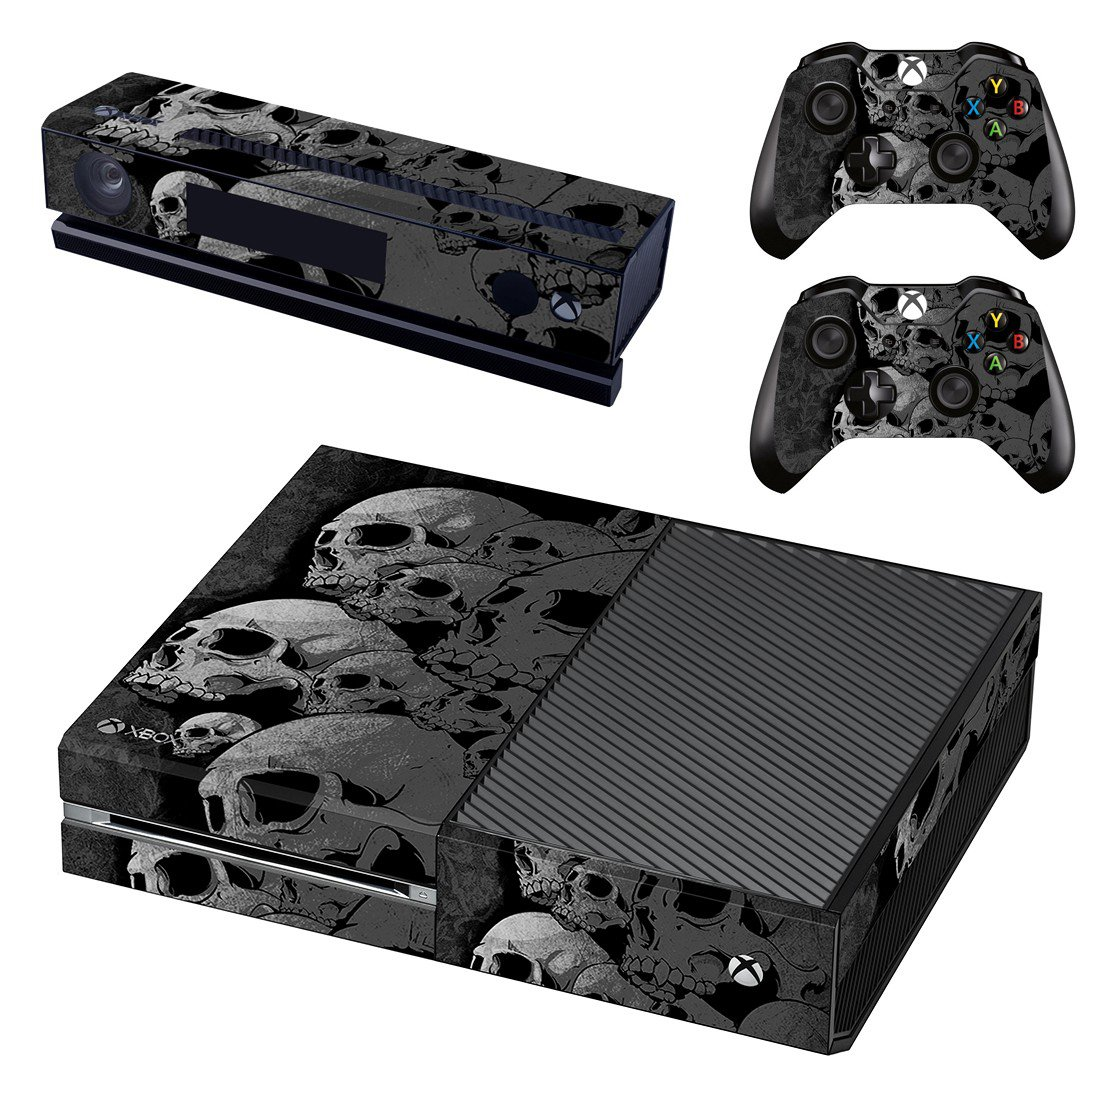 Broken Skull skin decal for Xbox one console and controllers